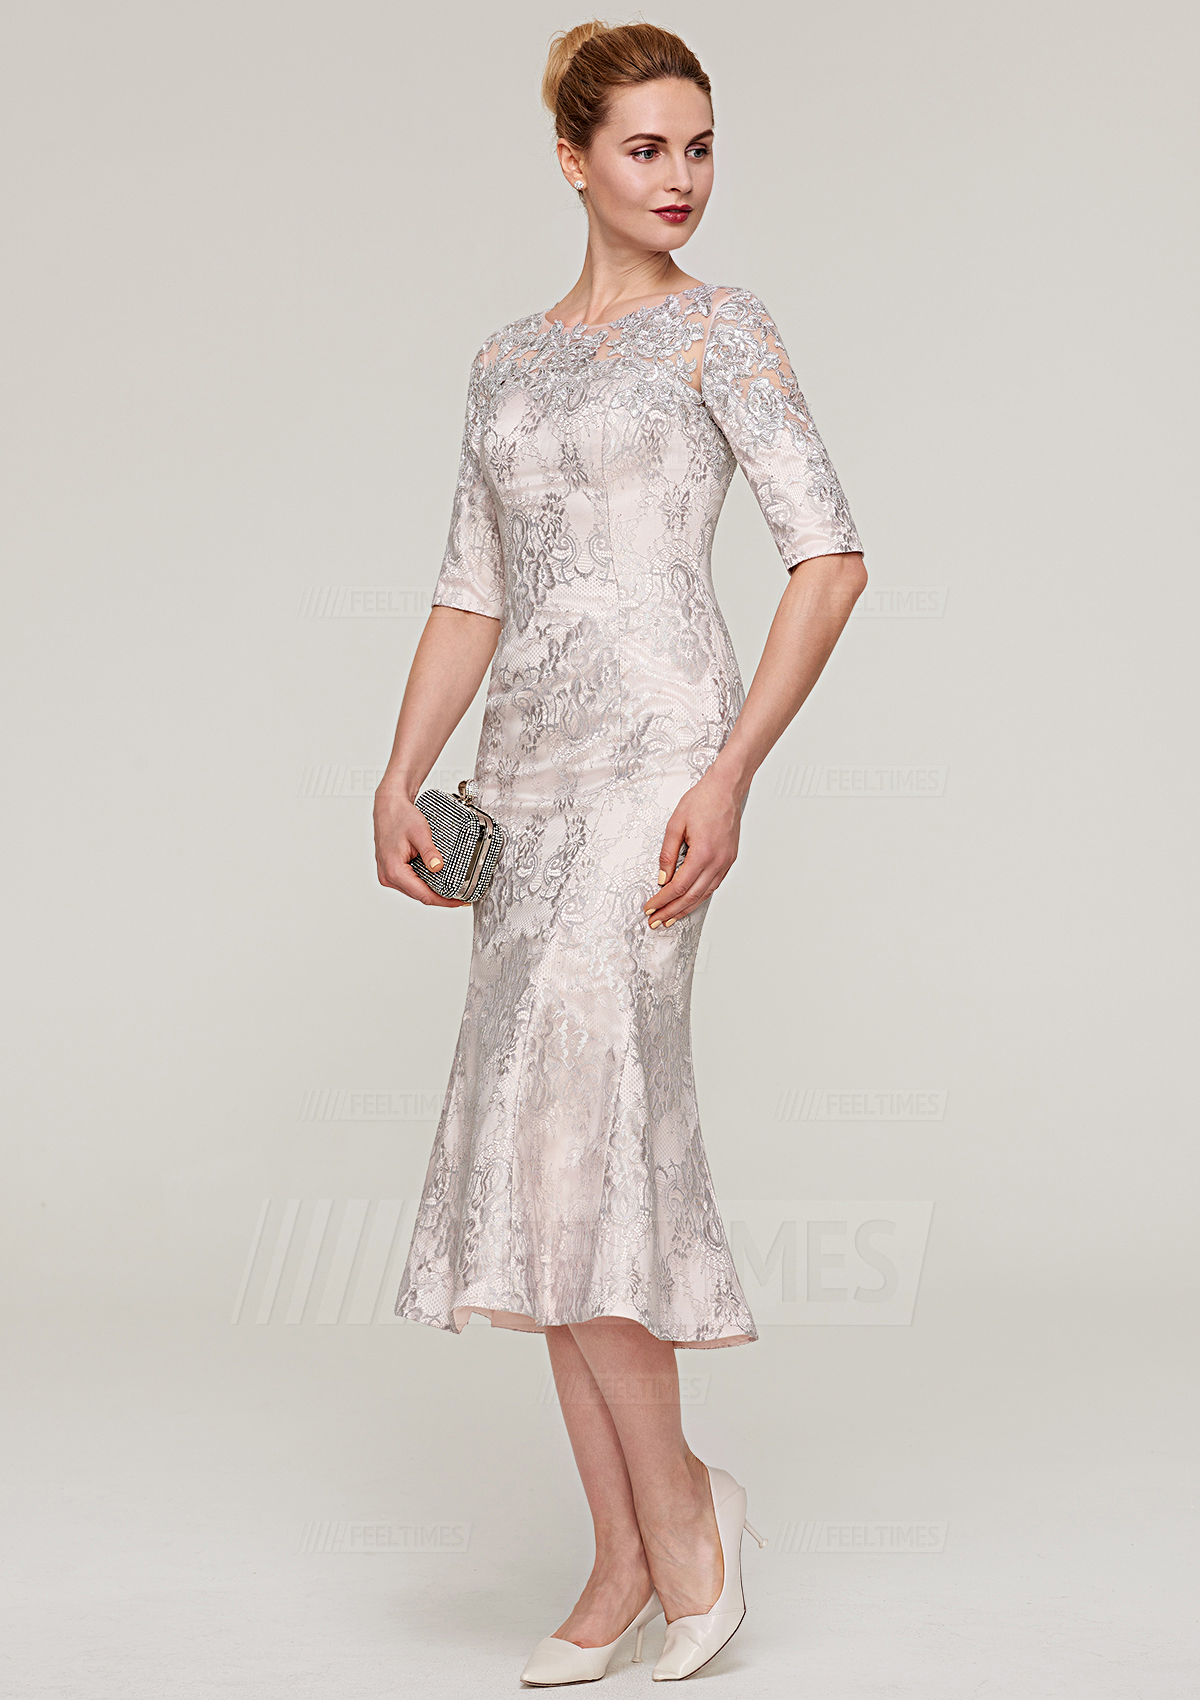 Sheathcolumn Bateau Half Sleeve Tea Length Lace Mother Of The Bride Dress With Appliqued Feeltimes